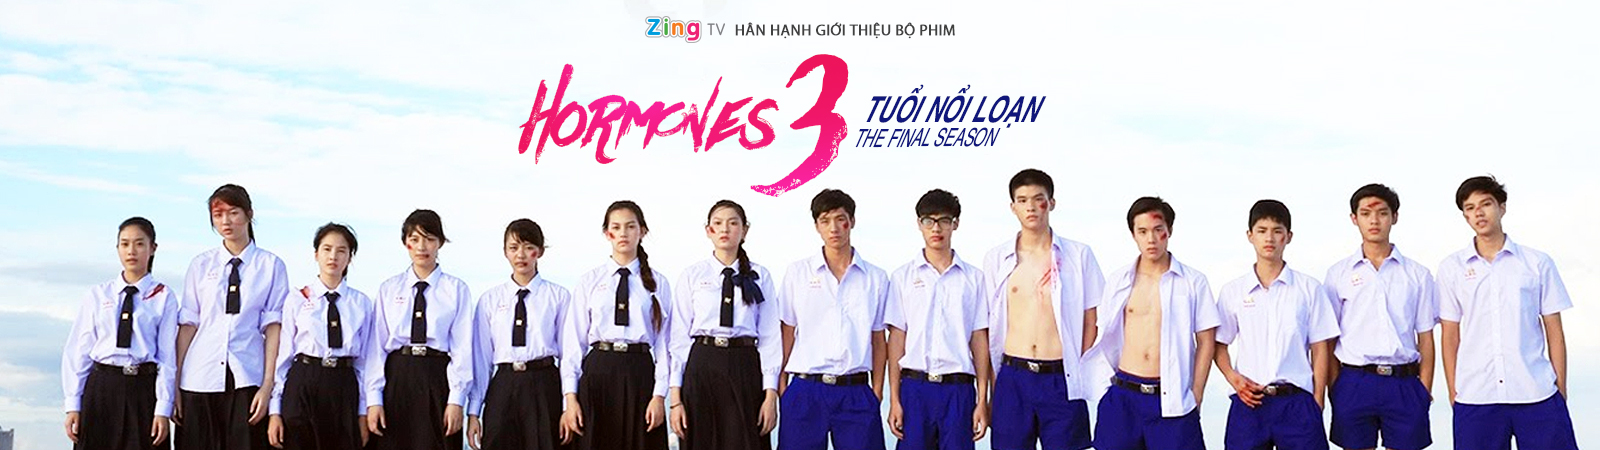 Tập 2 - Hormones 3 The Final Season